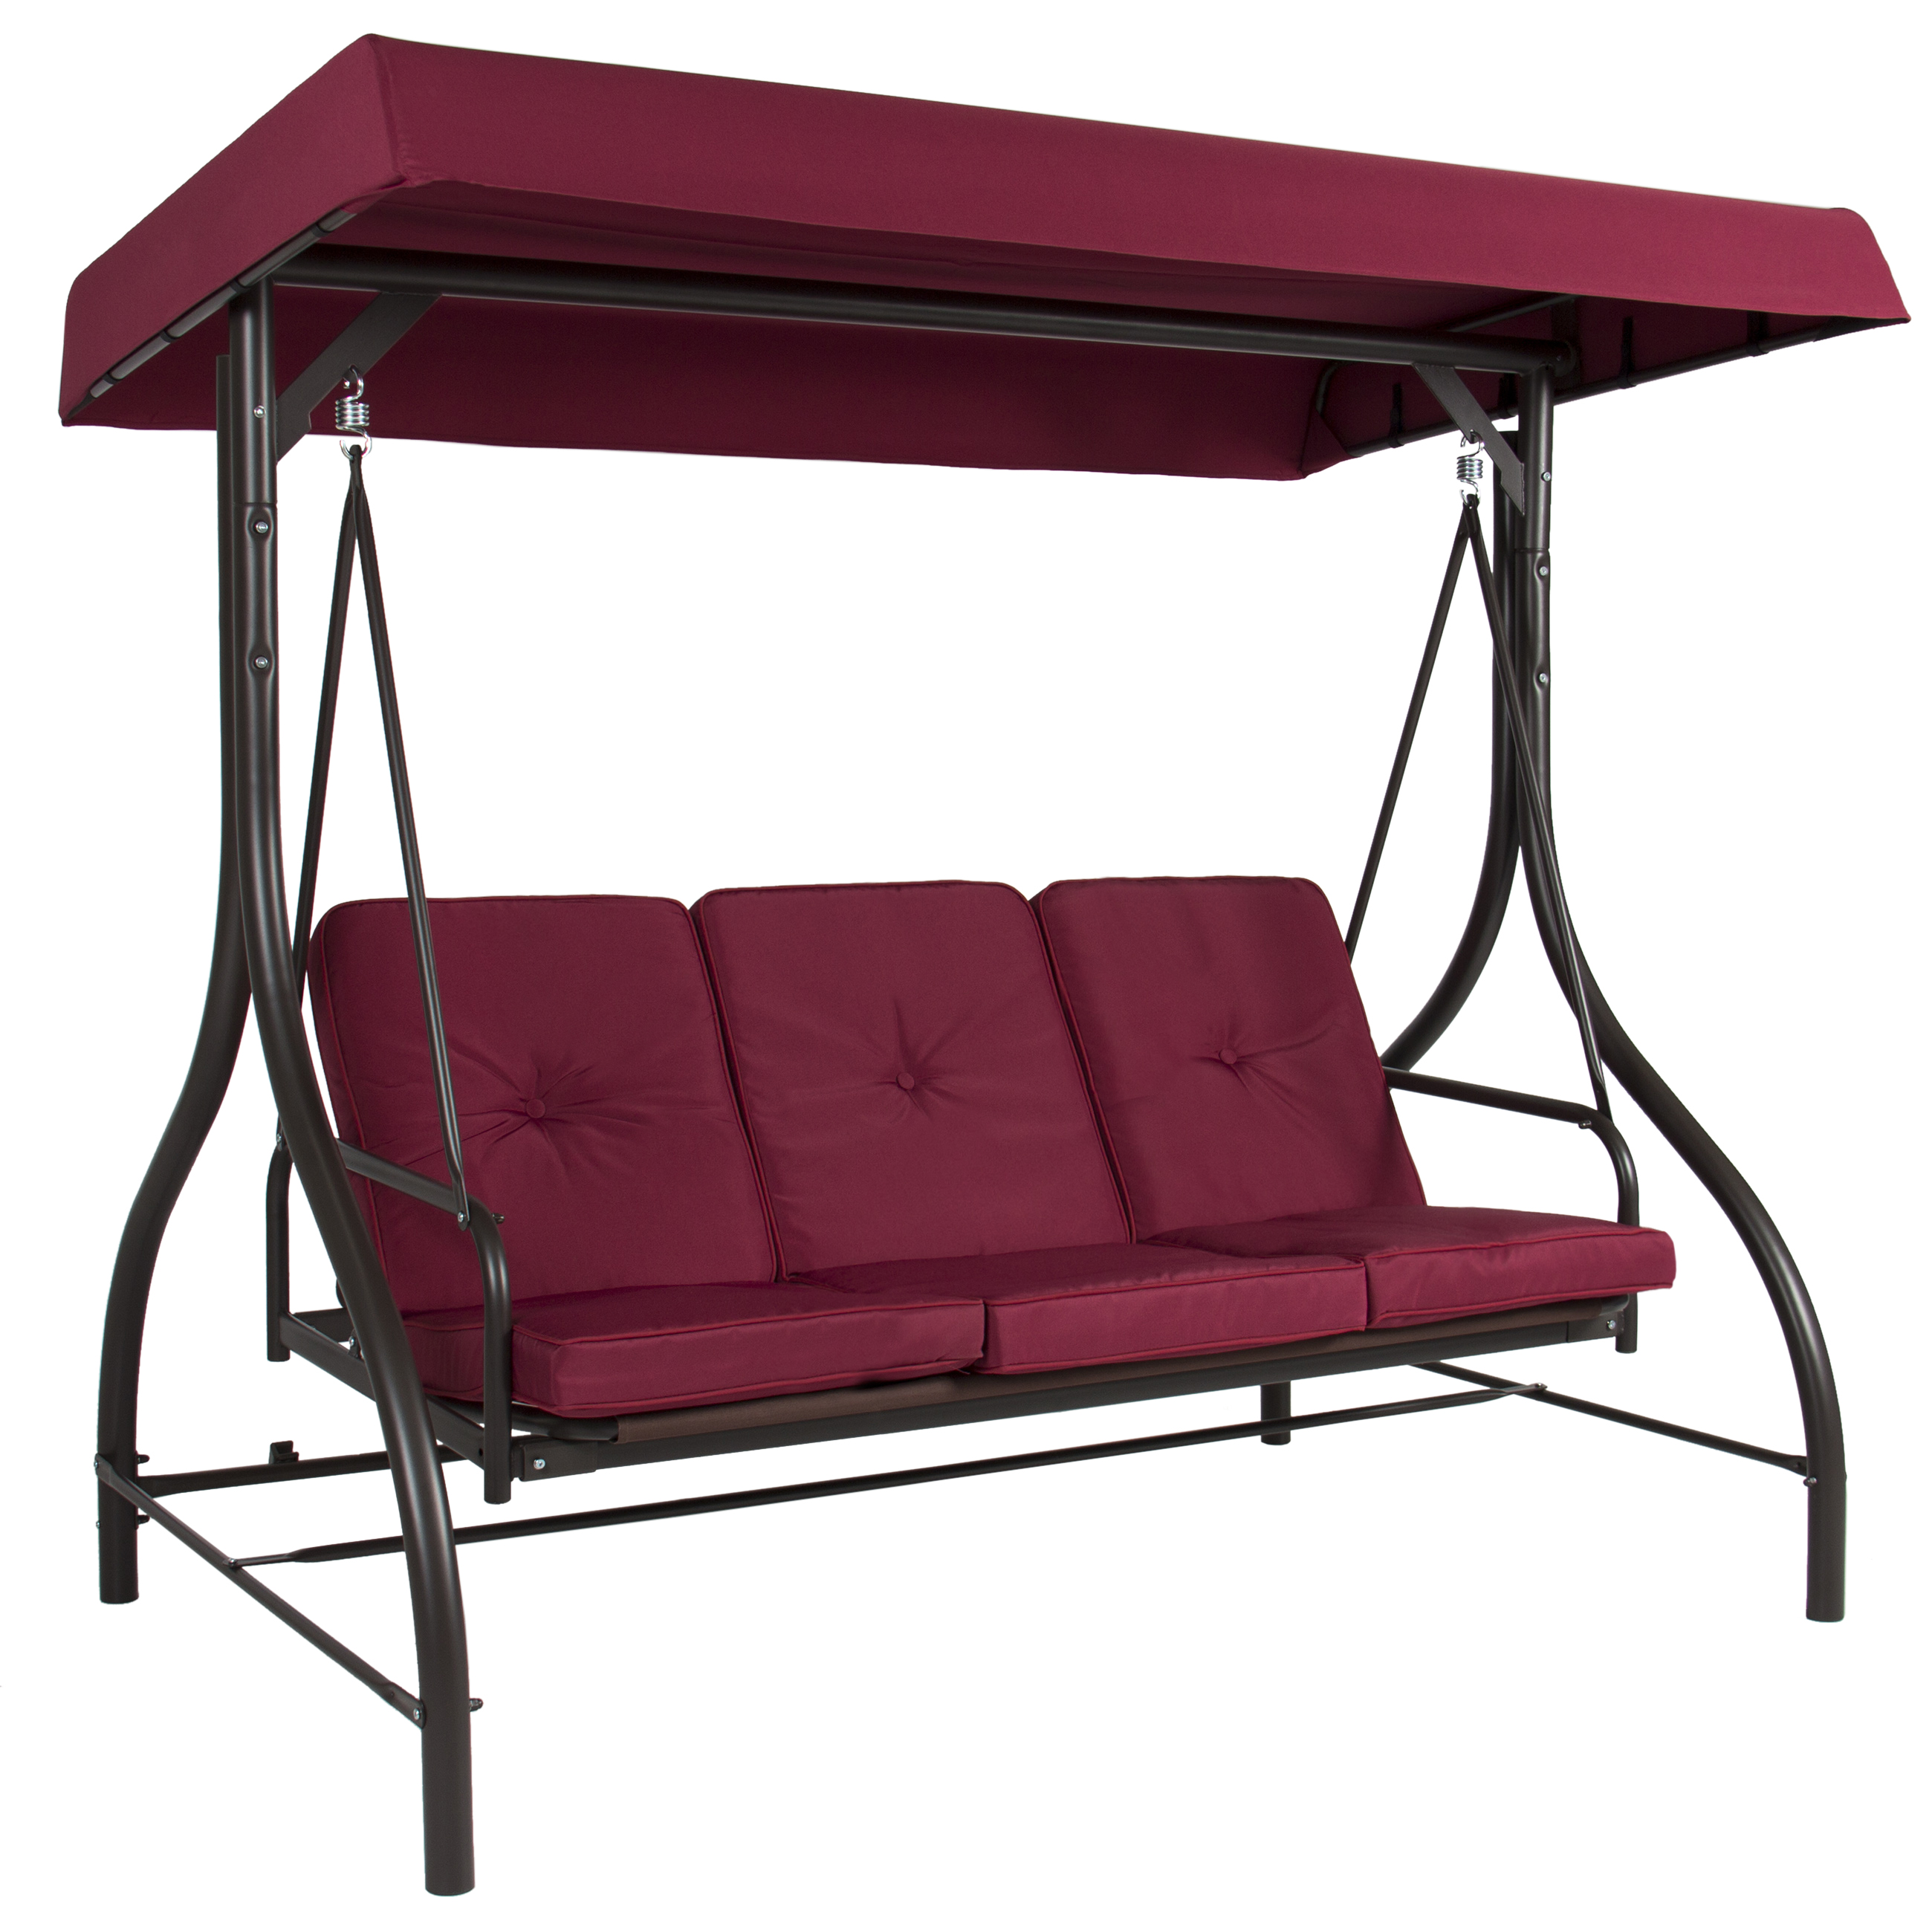 Best Choice Products Converting Outdoor Swing Canopy Hammock Seats 3 Patio Deck Furniture Burgundy  sc 1 st  Walmart & Best Choice Products Converting Outdoor Swing Canopy Hammock Seats ...